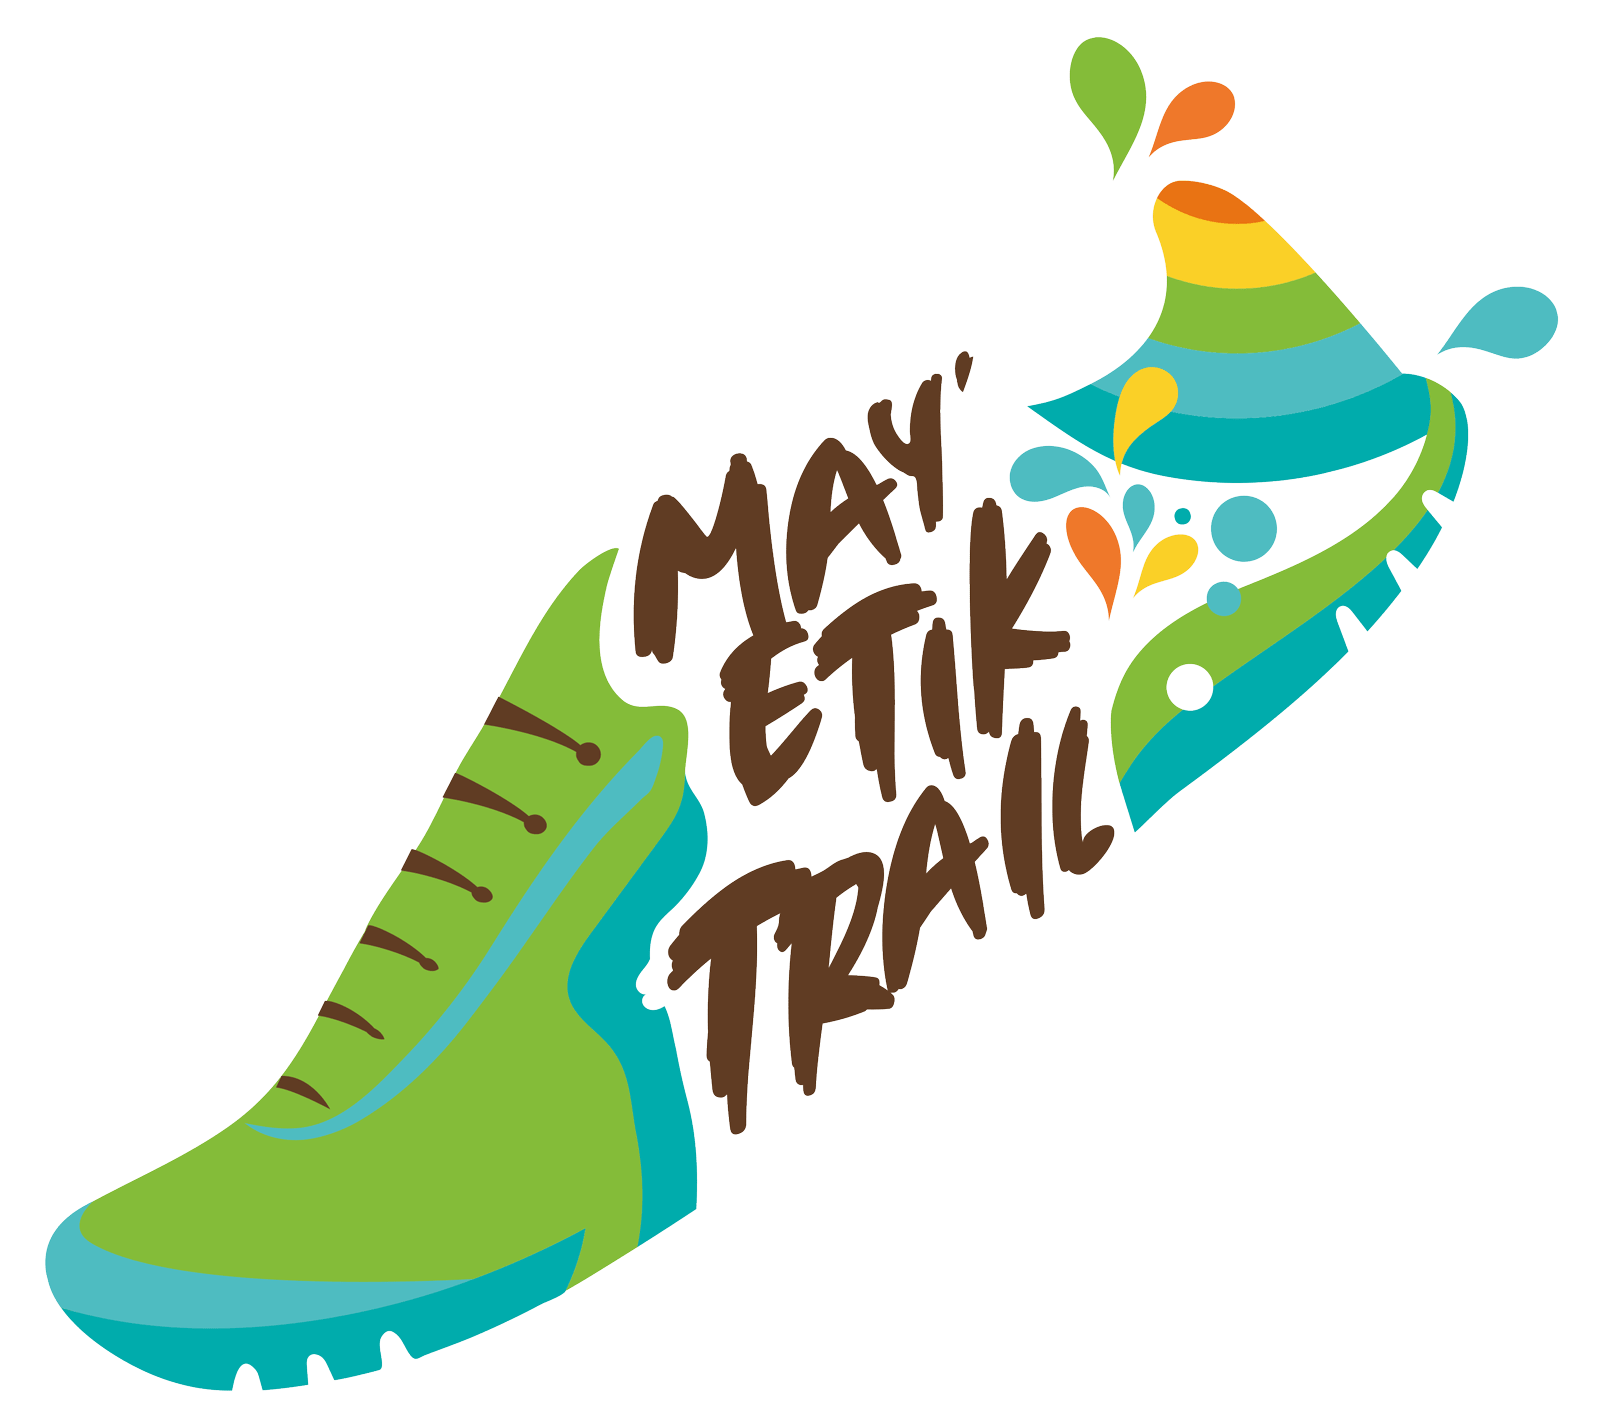 May'Etik Trail